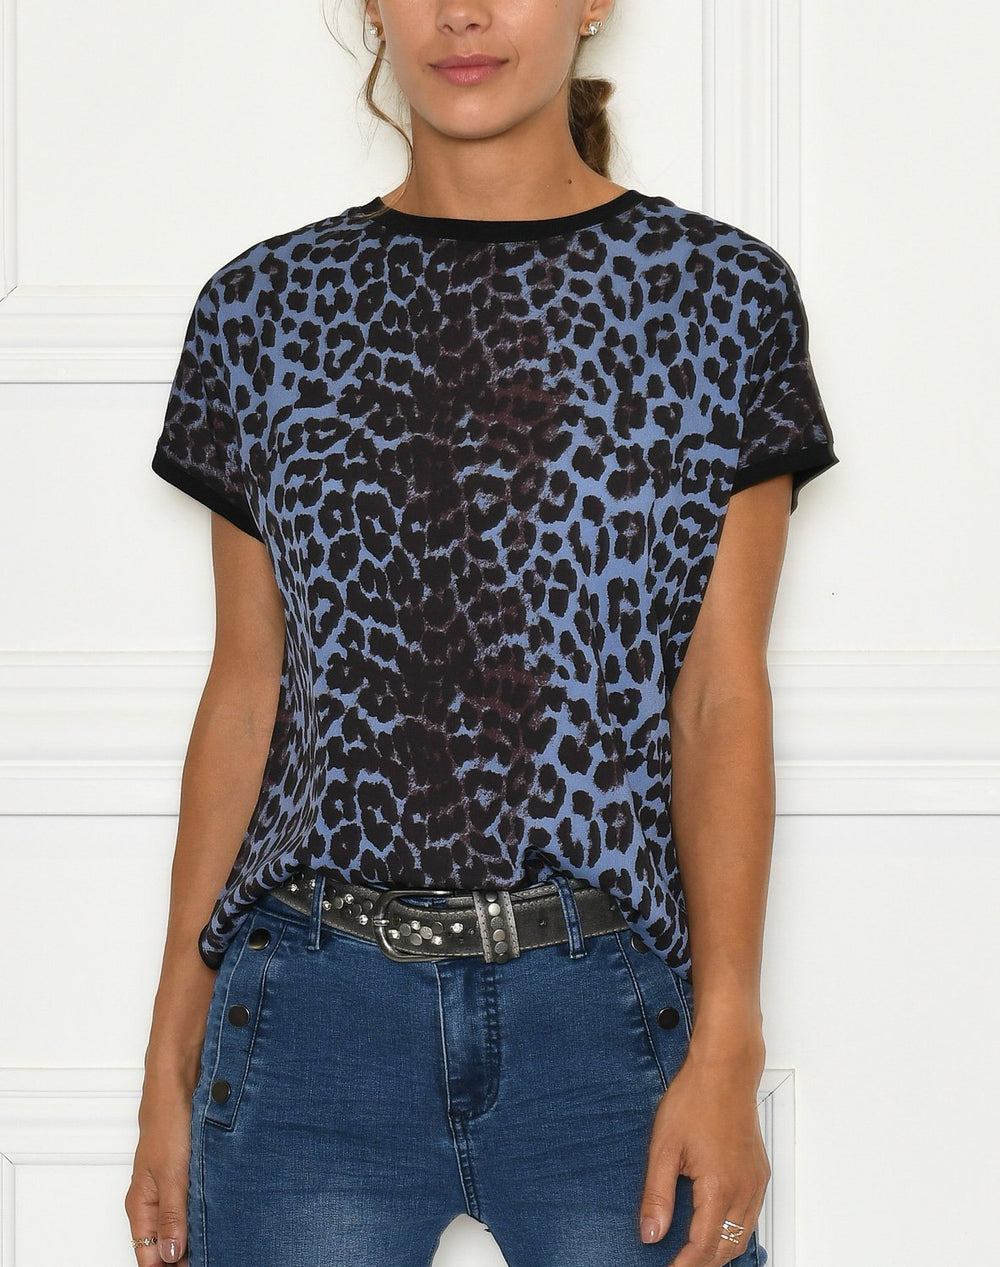 B. Young BYPanya leo t-shirt country blue mix - Online-Mode